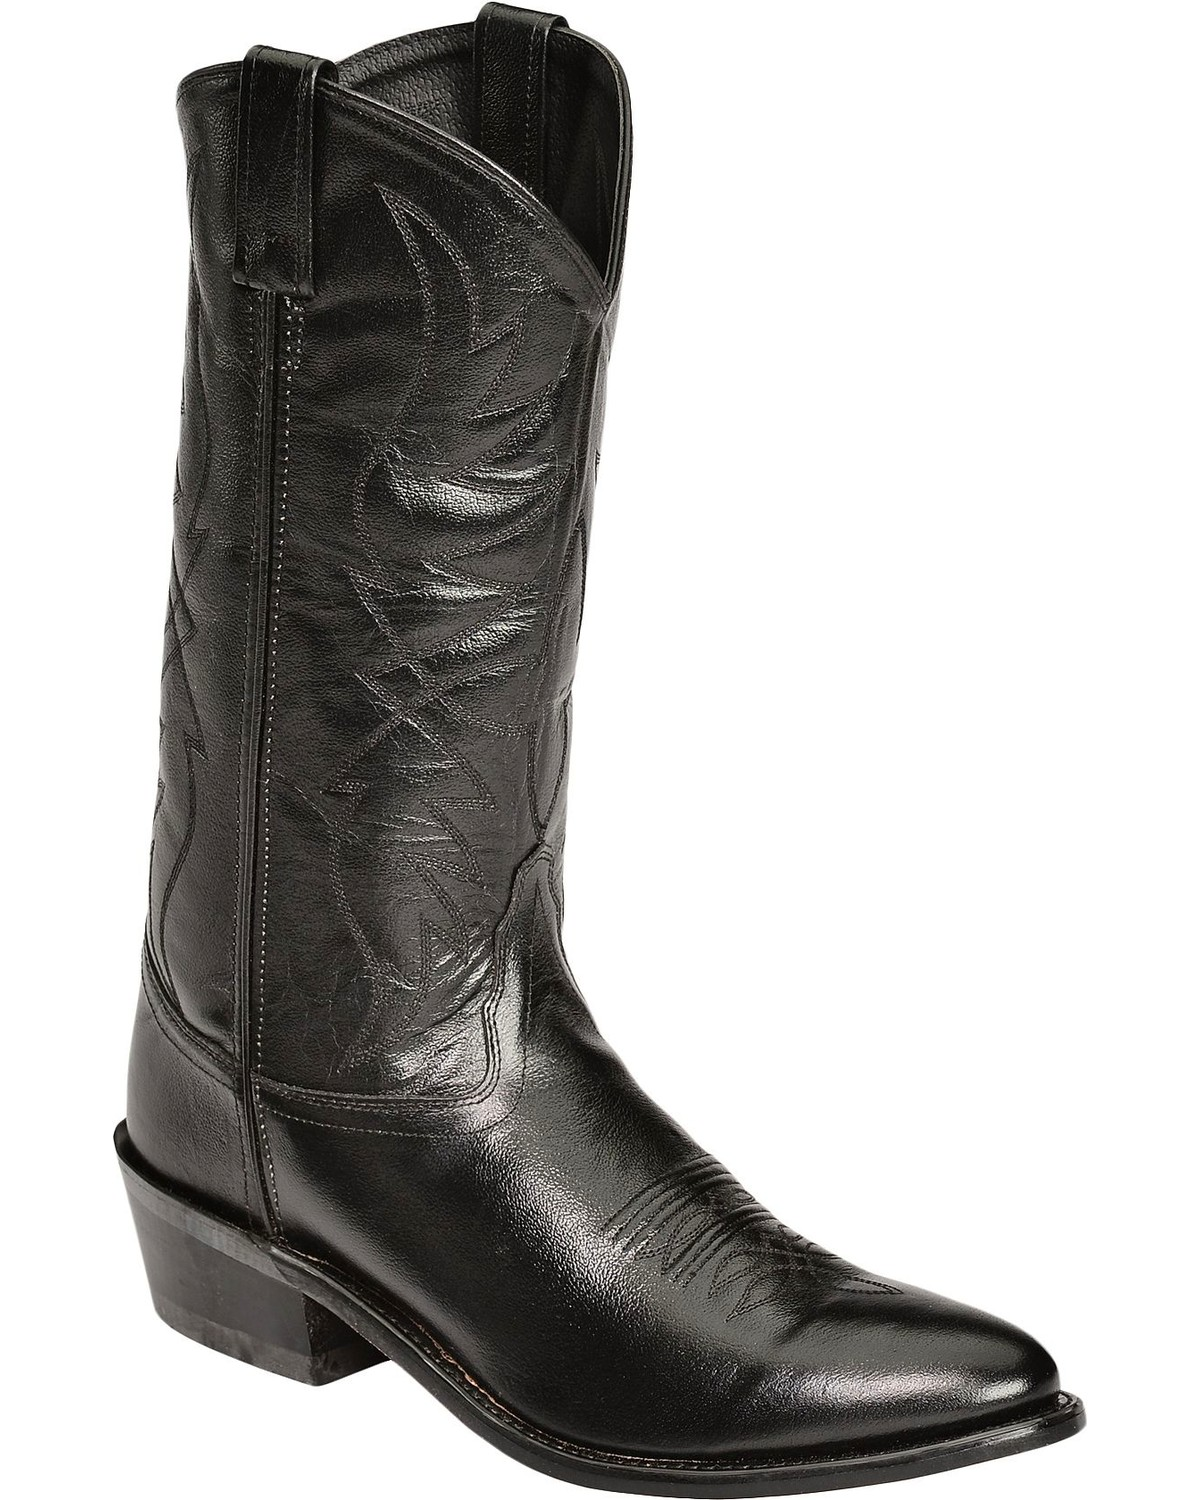 Old West Smooth Leather Cowboy Boots - Medium Toe | Sheplers